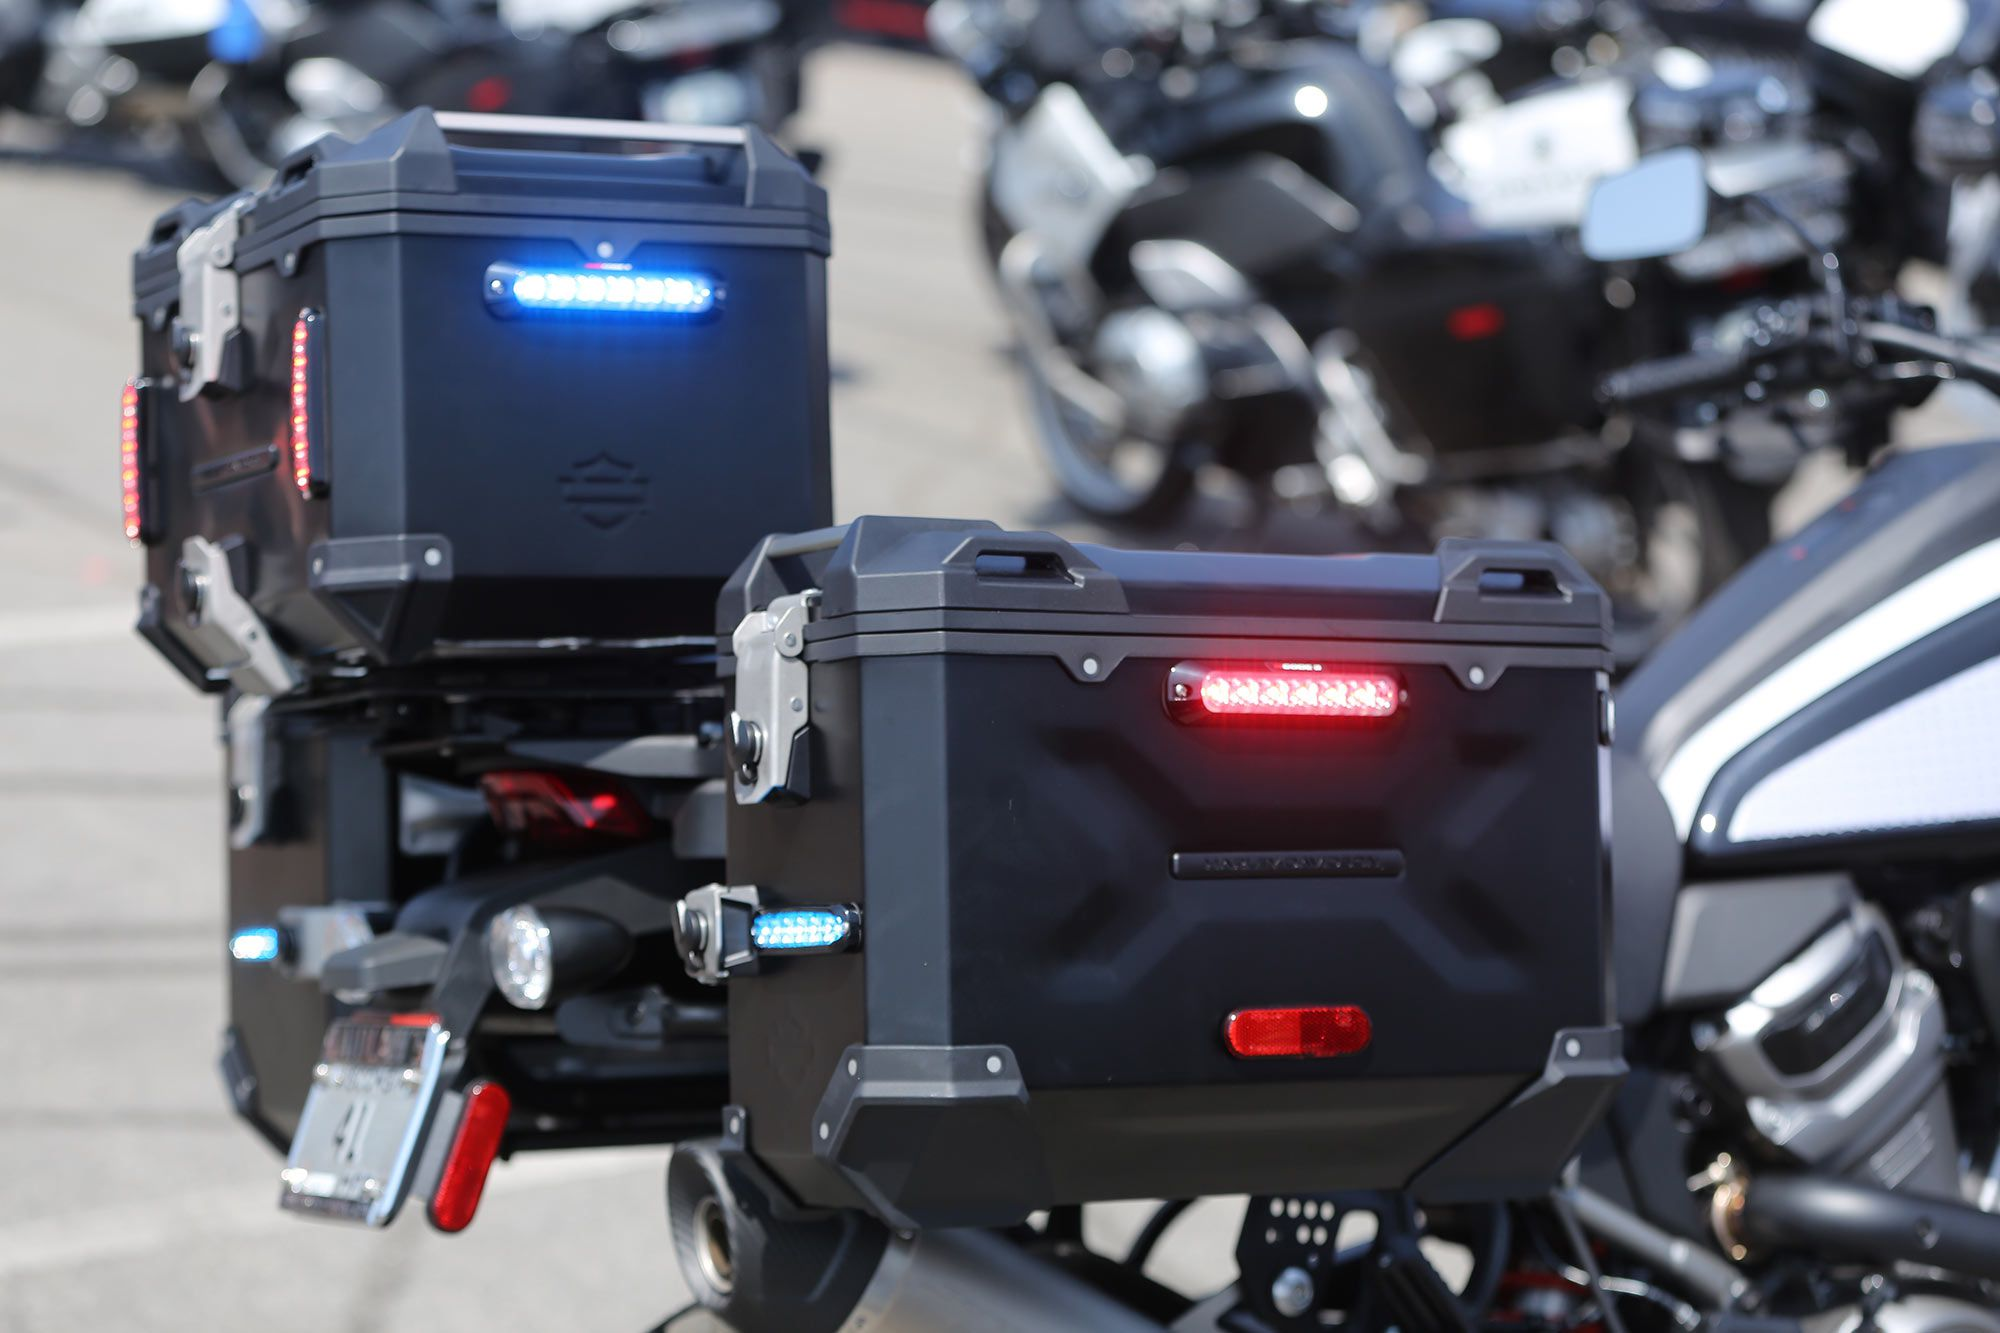 Harley-Davidson hard bags have been equipped with flashing red and blue lights.